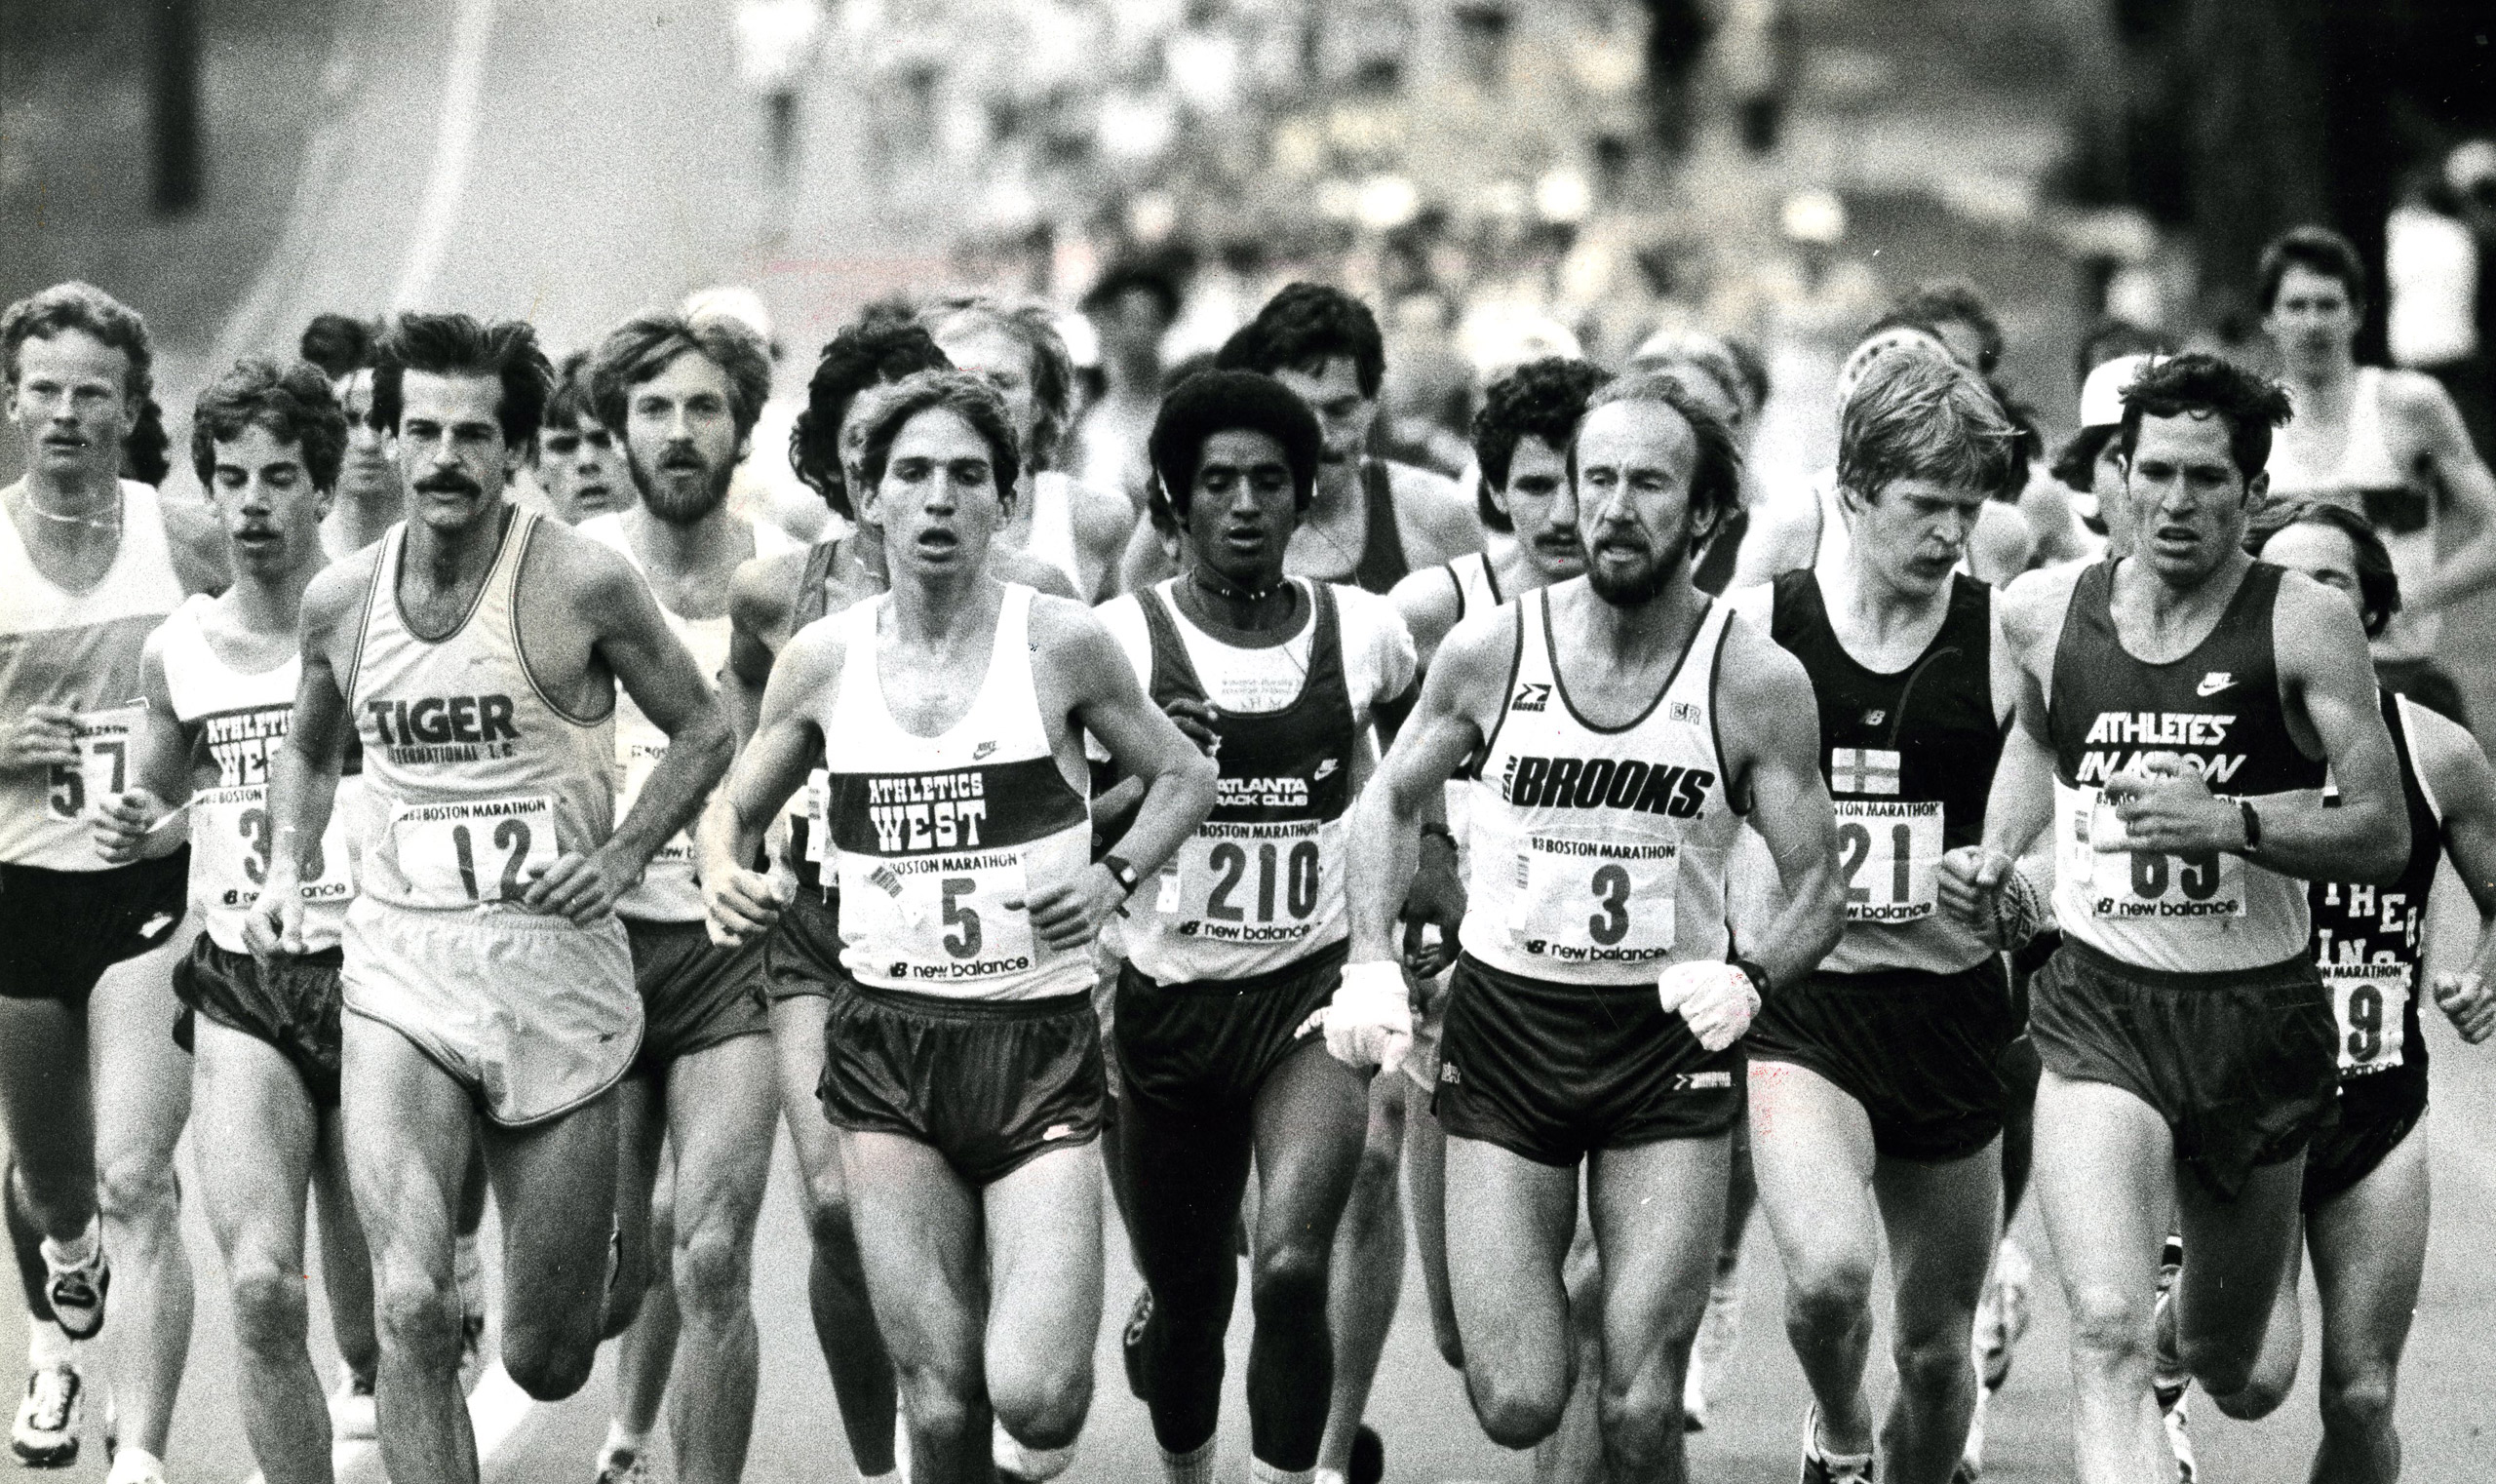 The pack at the start of the 1983 race in Hopkinton. Grey Meyer, the eventual winner, led wearing number 3. The top five finishers were all Americans: Ron Tabb was second, Benji Durden, third, Ed Mendoza, fourth and Chris Bunyan finished fifth.